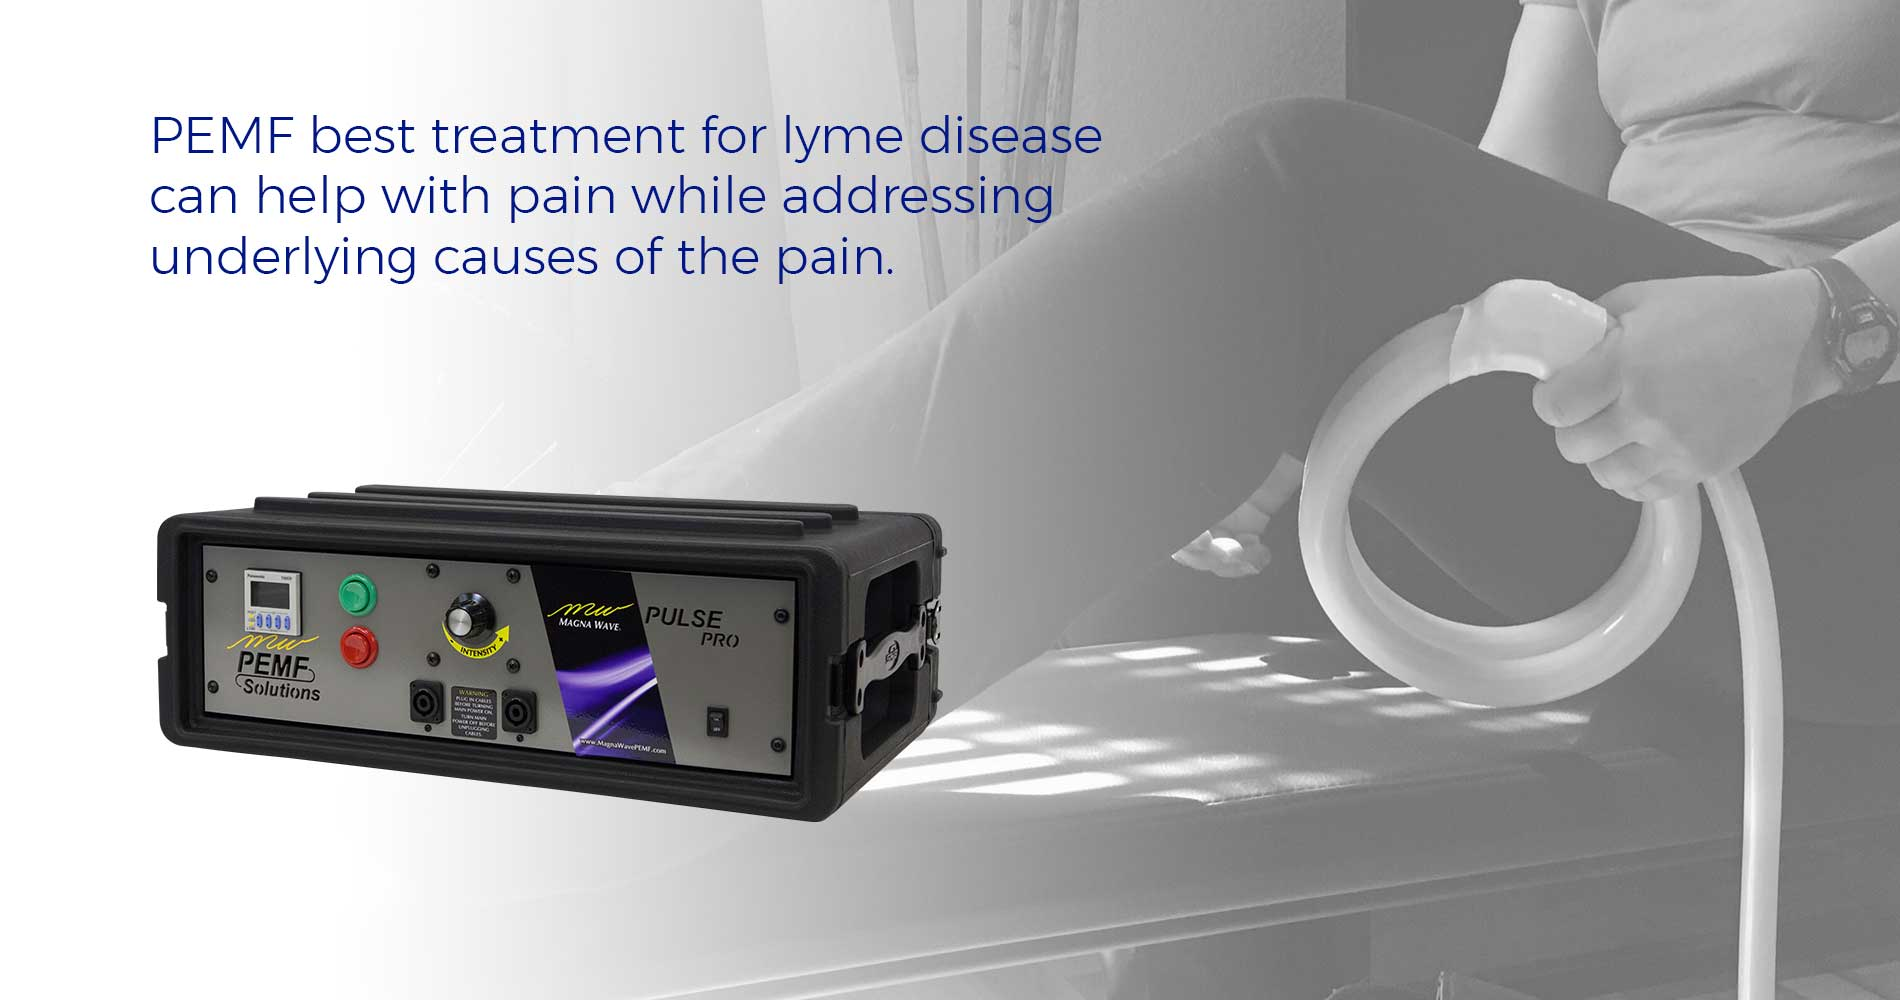 PEMFs best treatment for Lyme Disease can help with pain while addressing underlying causes of pain.